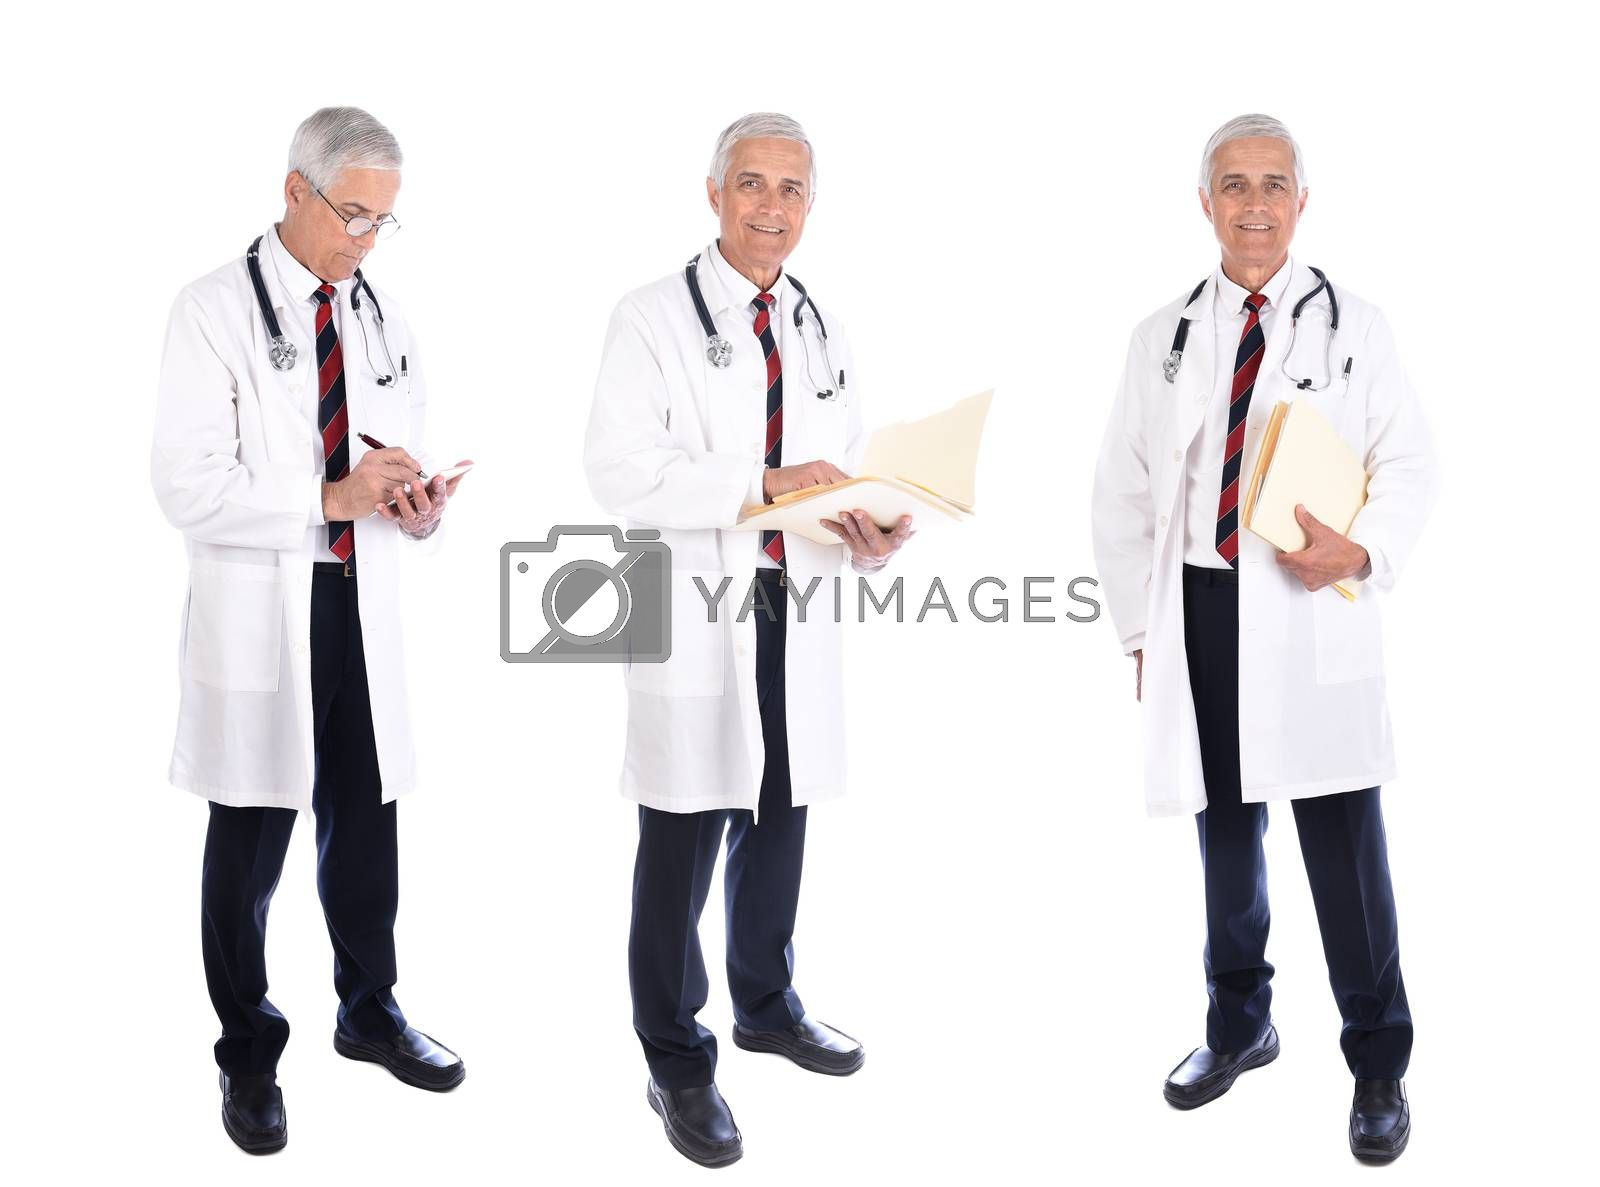 Three views of a mature doctor writing a prescription, holding a patients file while wearing a lab coat in different poses, isolated on white.